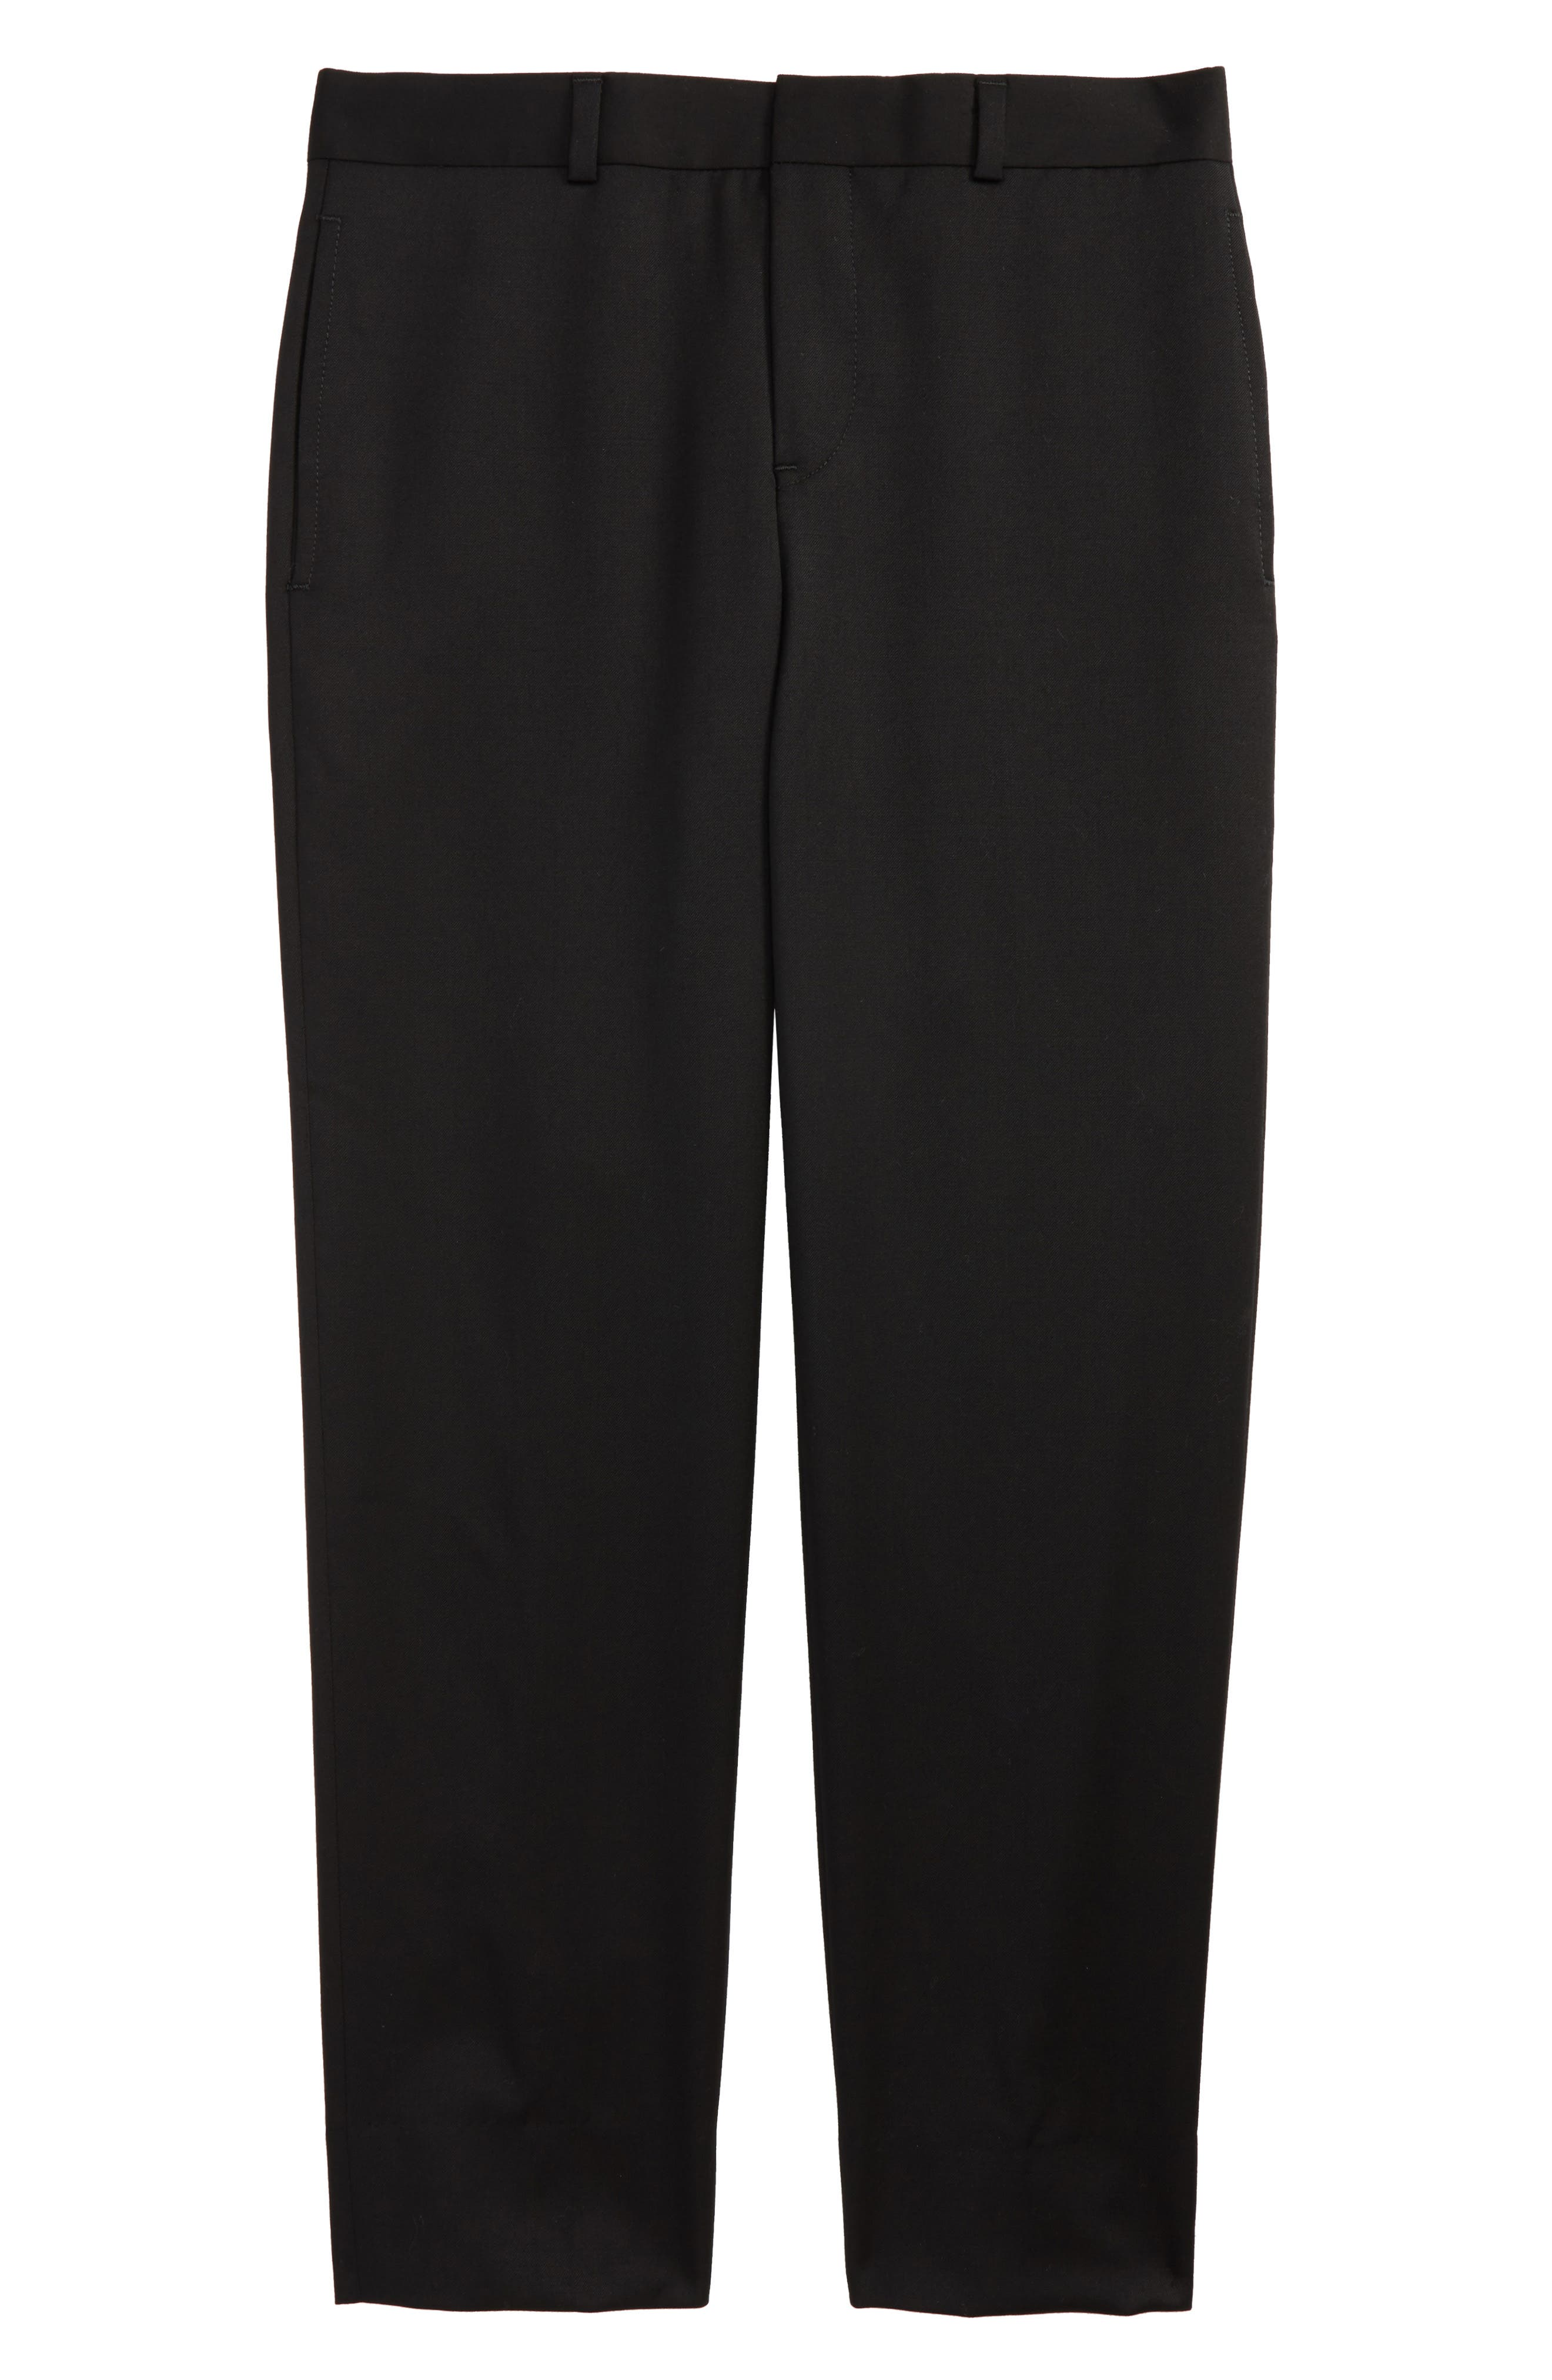 Flat Front Trousers,                         Main,                         color, Black